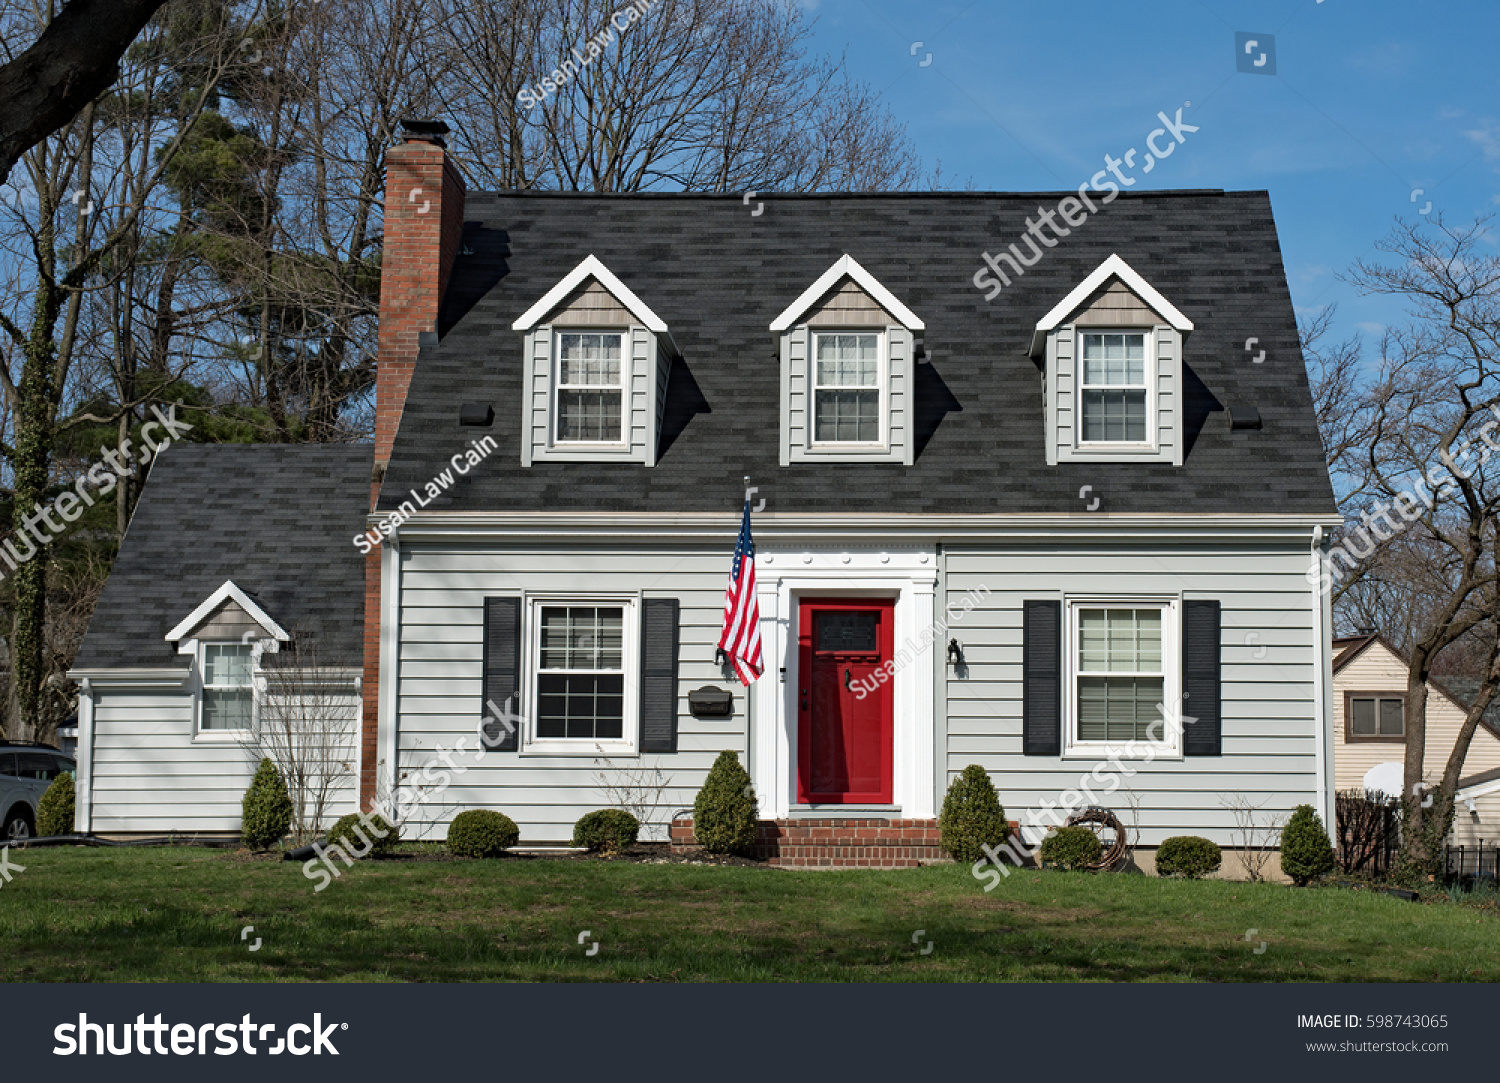 Charming Cape Dormers #4: Cape Cod House With Three Dormers U0026 Red Door